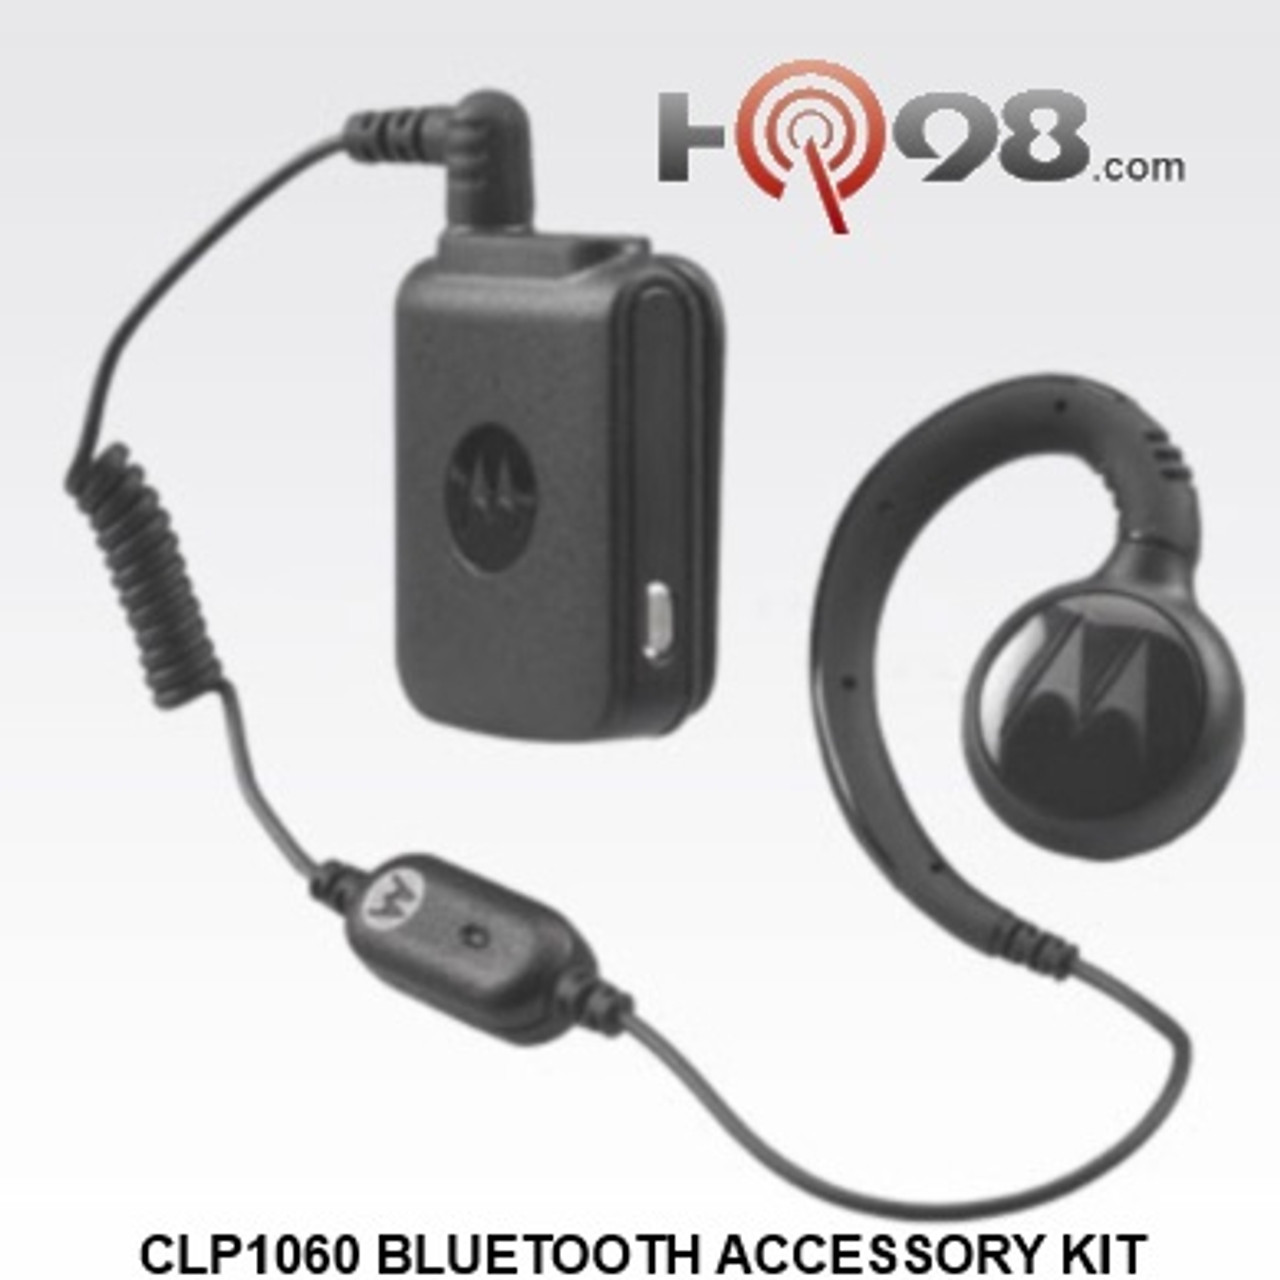 The Clp 1060 By Motorola Bluetooth Accessory Kit Includes The Bluetooth Pod Hkln4512 Swivel Earpiece Hkln4513 And Charger Hkln4509